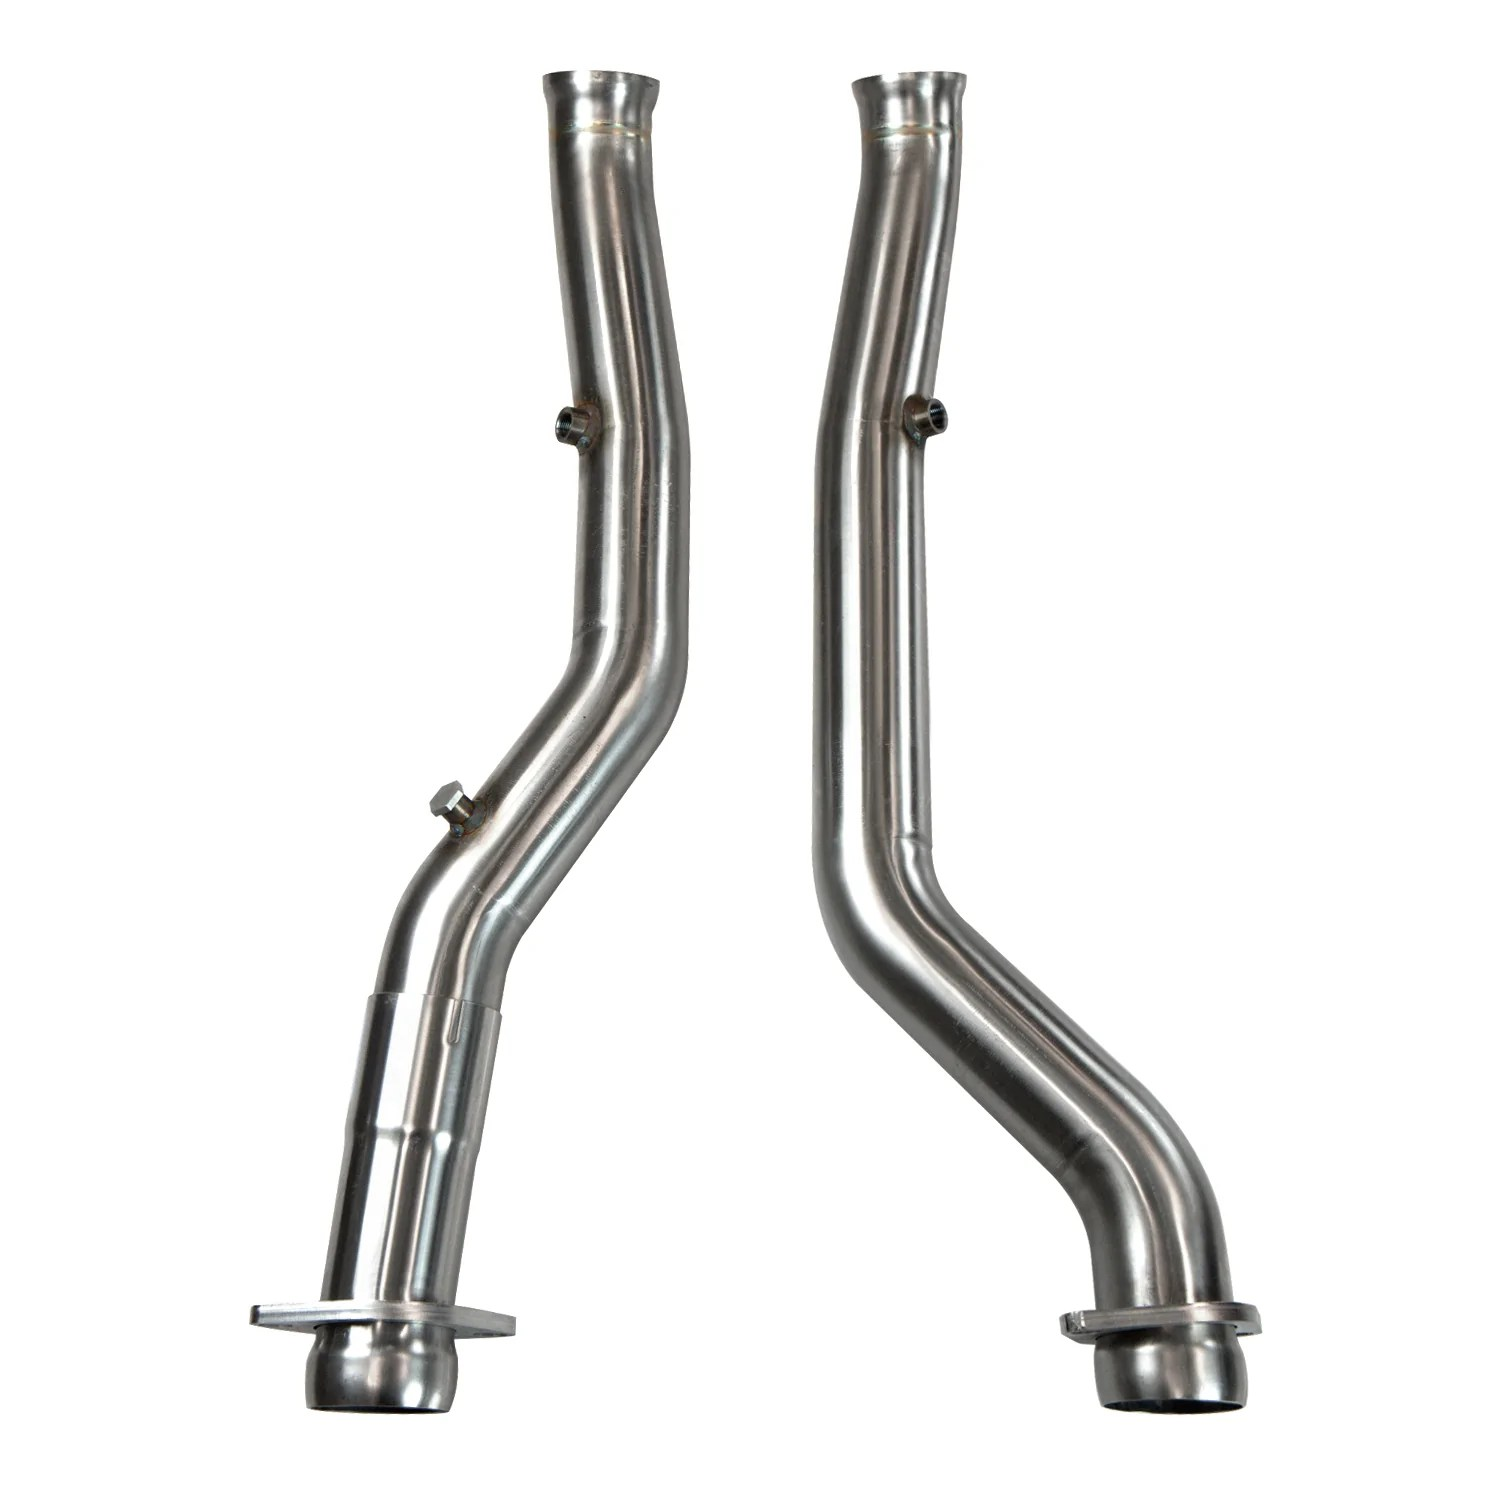 small resolution of 2011 dodge durango 5 7l 2012 jeep grand cherokee wk2 5 7l 3 x oem non catted connection pipe